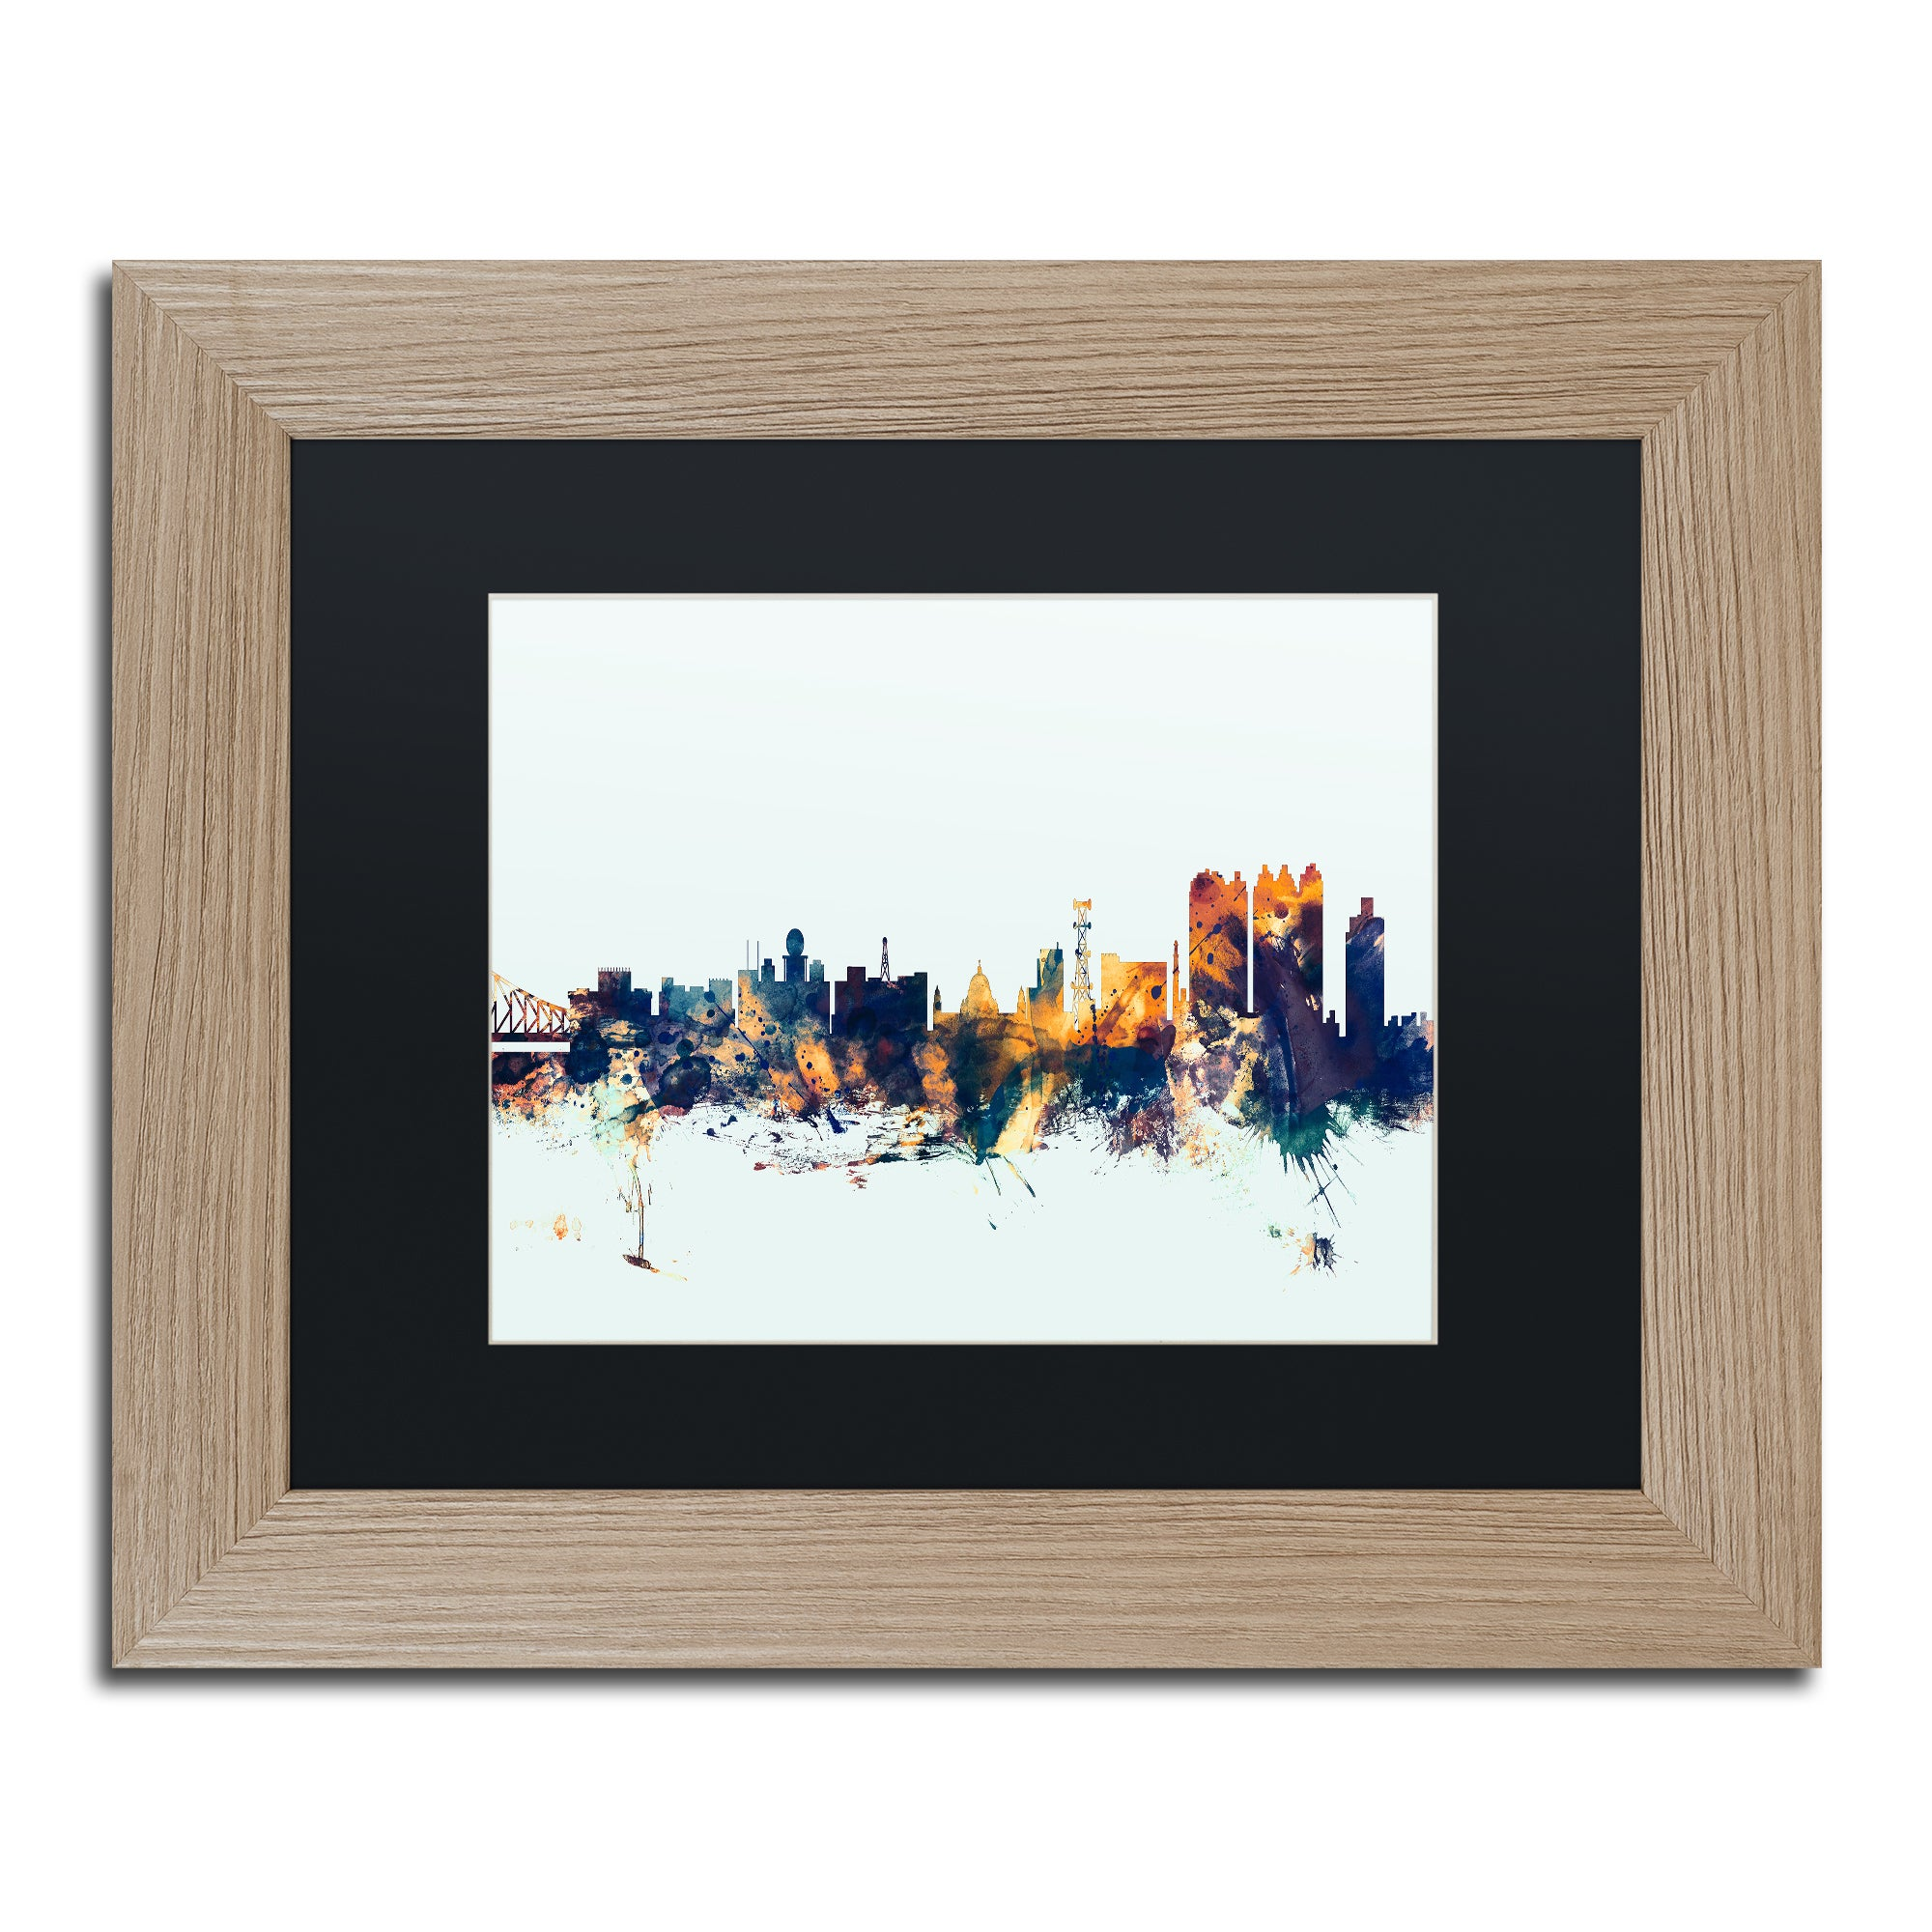 feee8c81472e Shop Michael Tompsett  Calcutta India Skyline Blue  Matted Framed Art -  Free Shipping Today - Overstock - 12099683